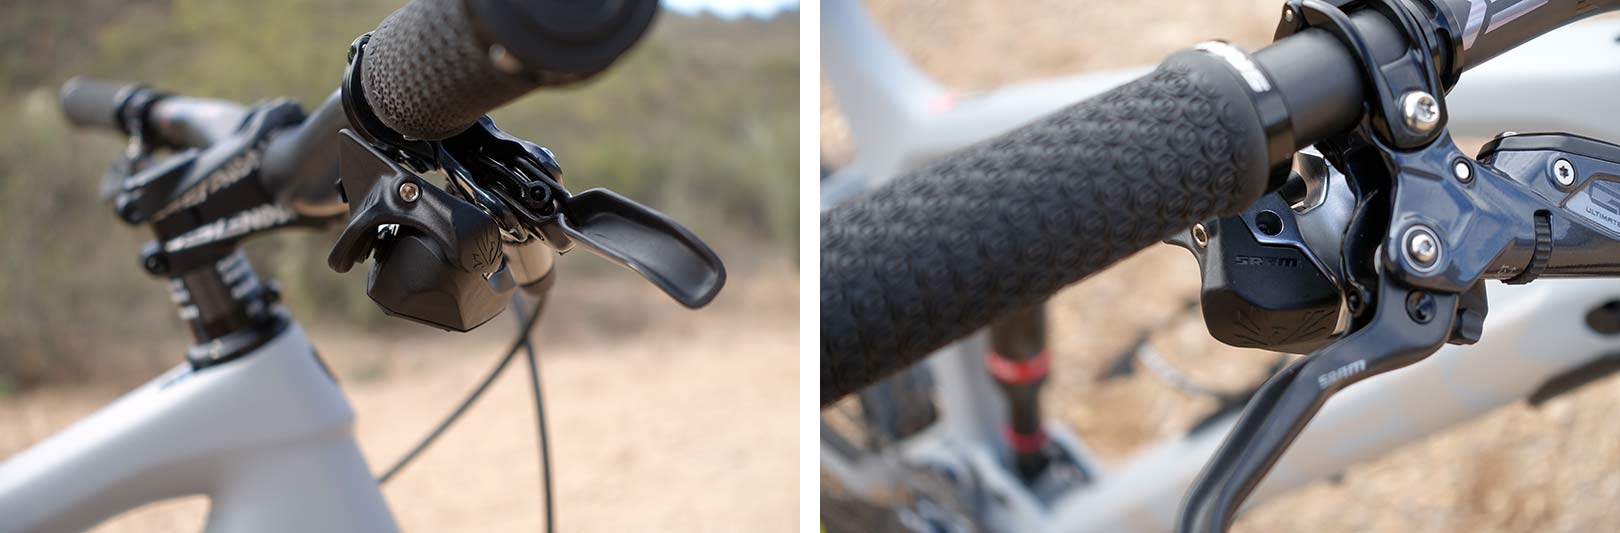 can i customize the shifters on sram eagle etap axs mountain bike components